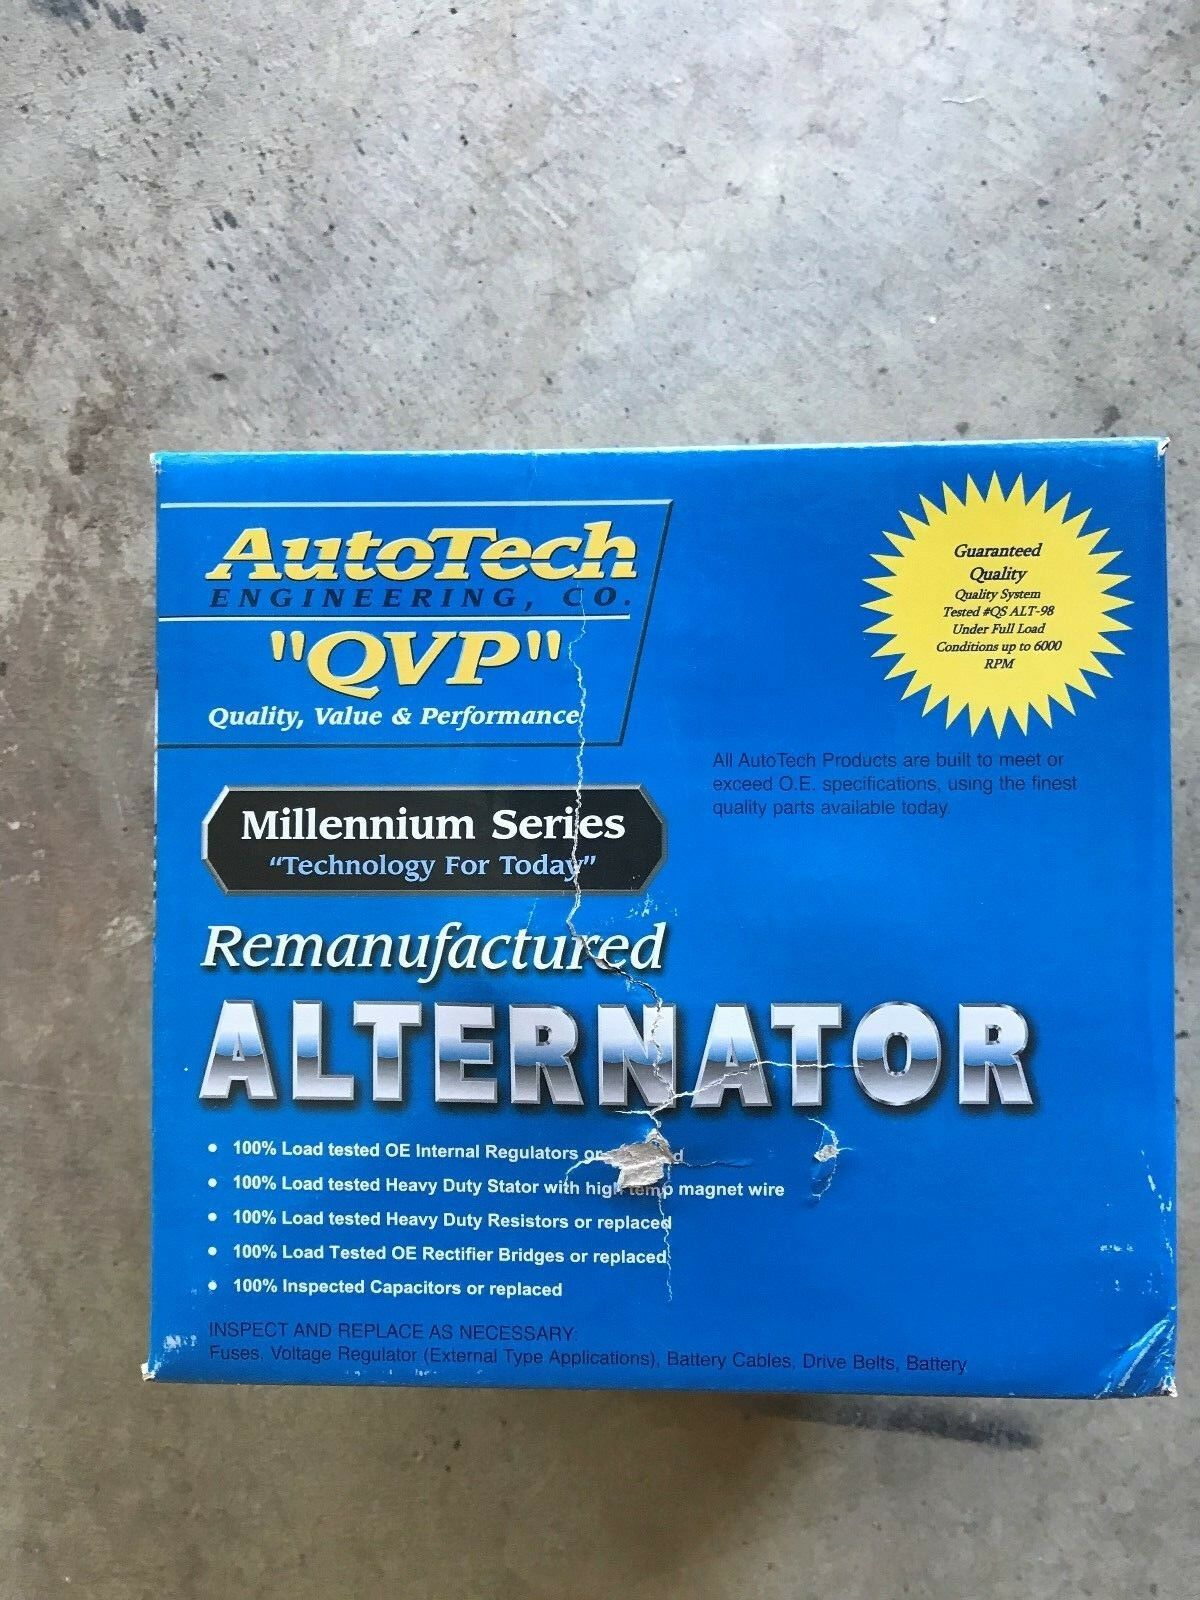 Autotech Re-manufactured Alternator Millennium Series 7861-7 1